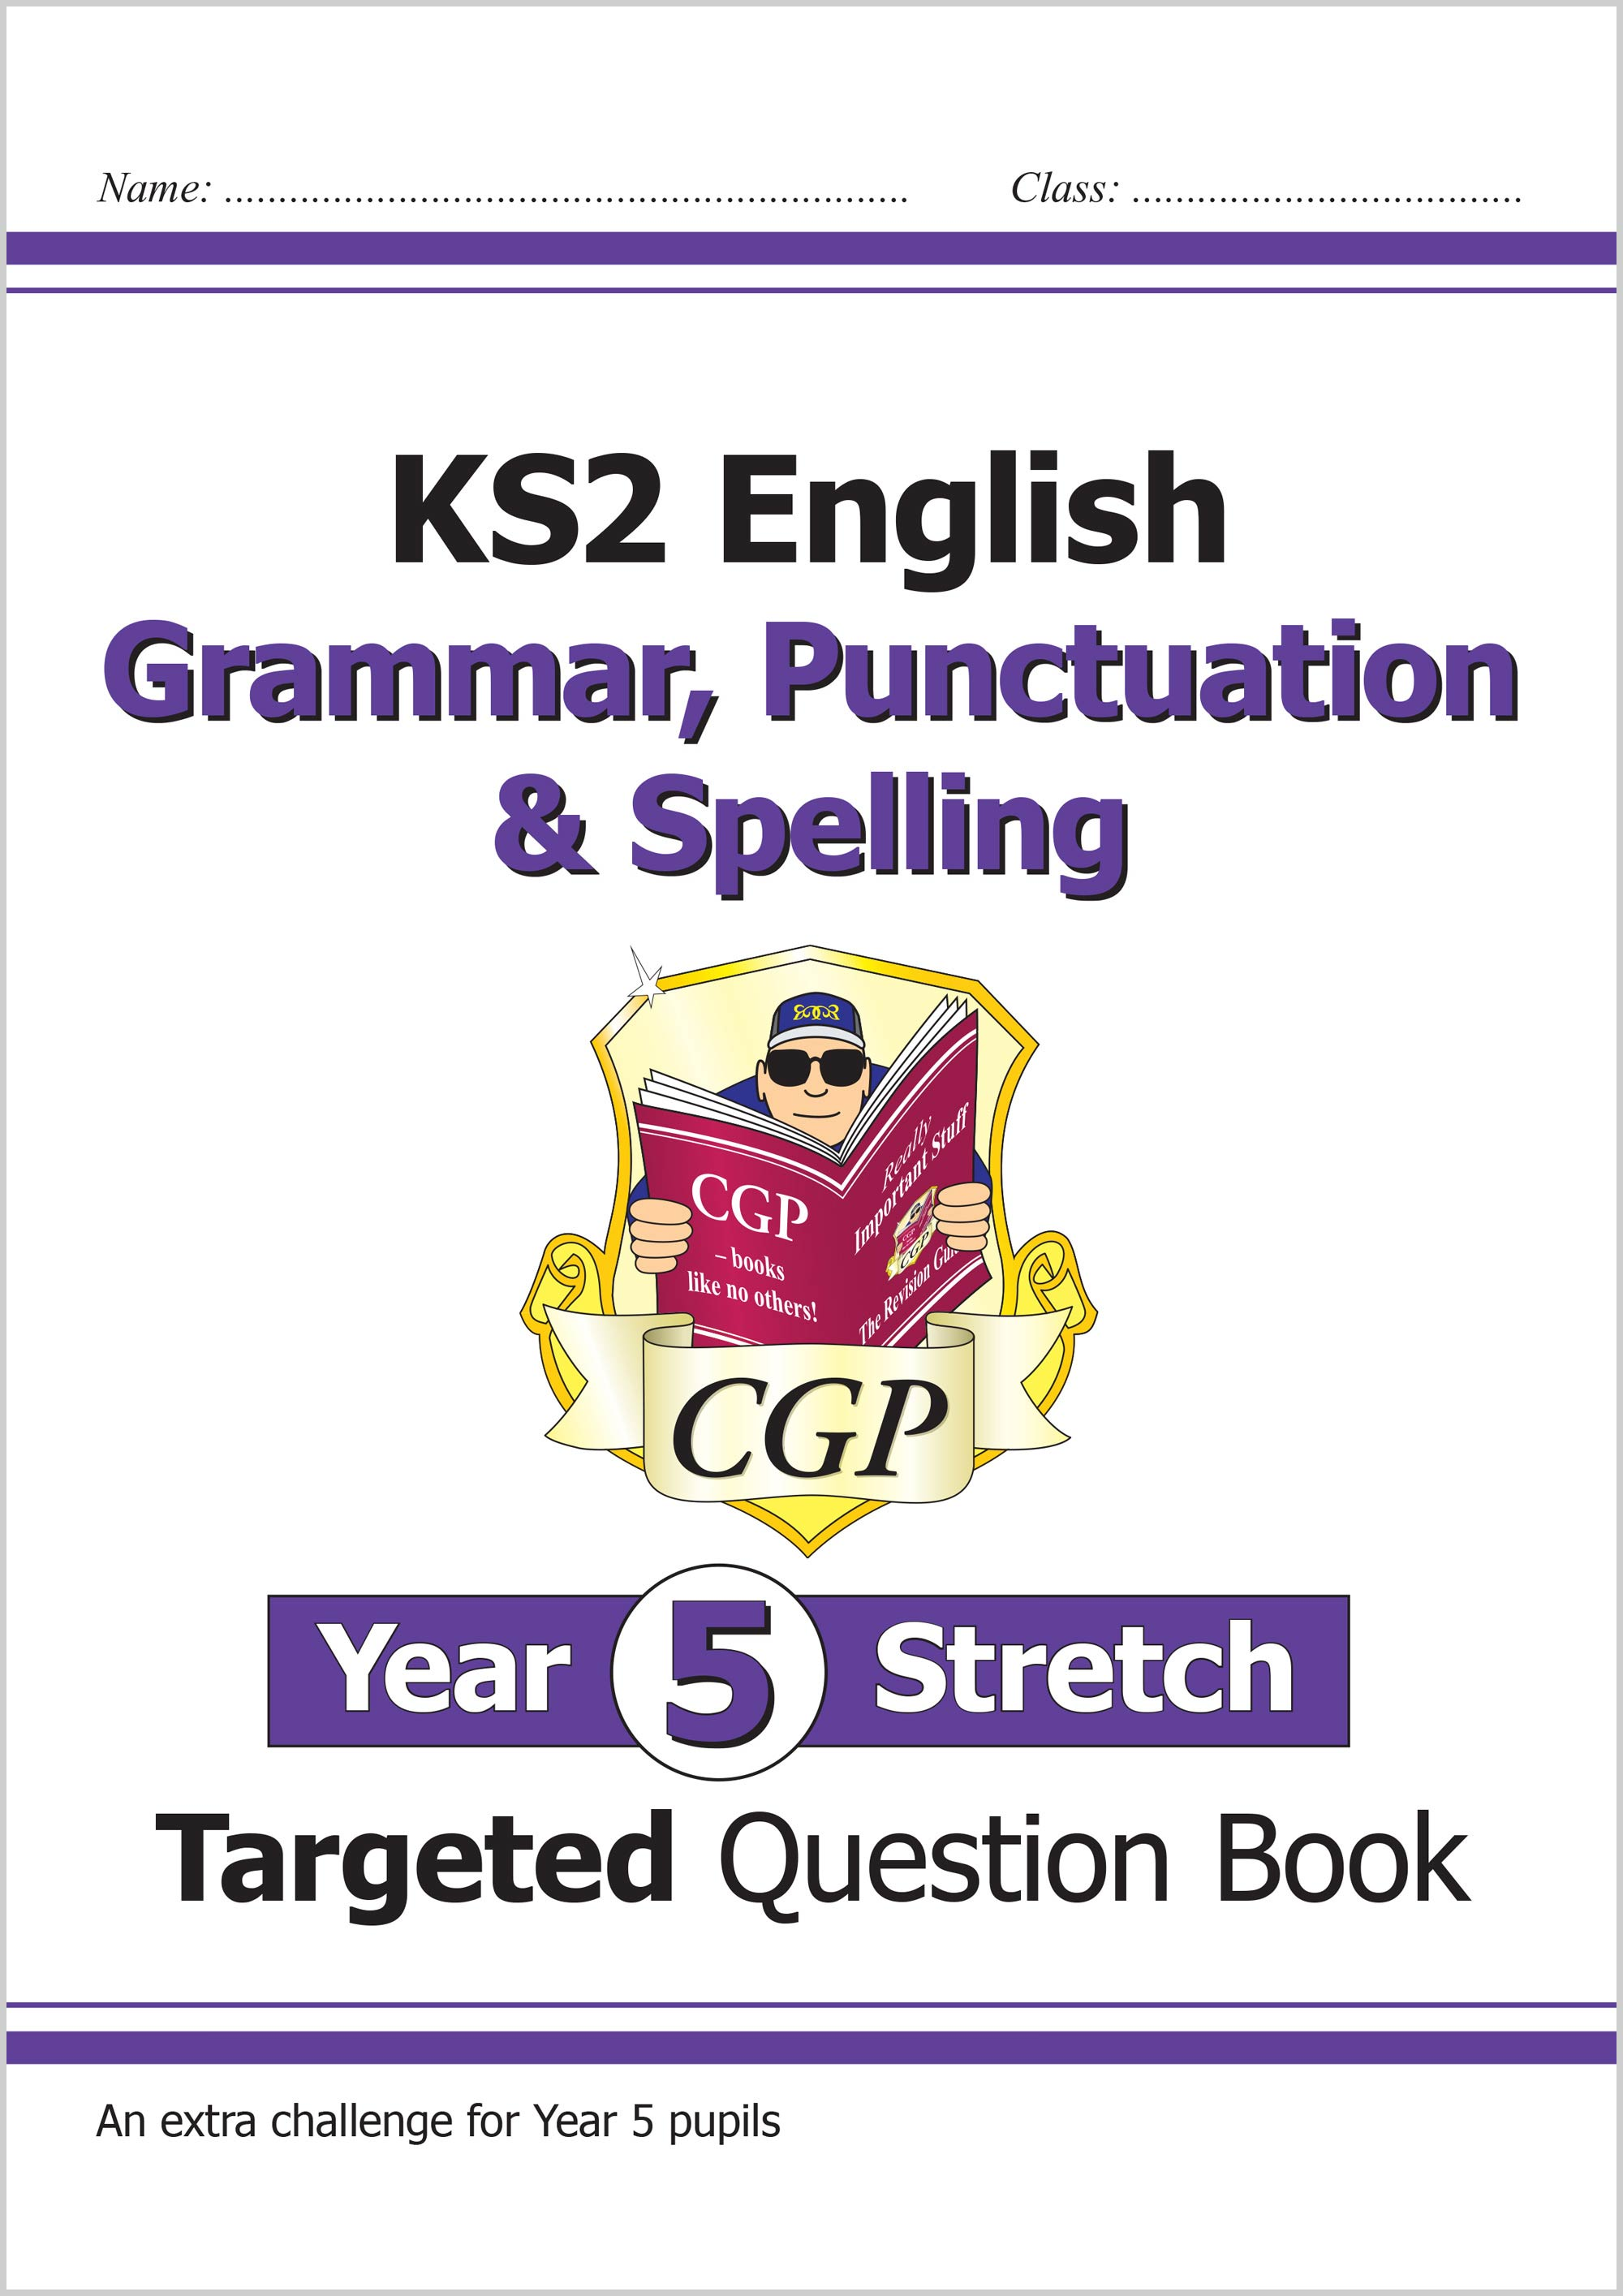 EG5HW21 - New KS2 English Targeted Question Book: Challenging Grammar, Punctuation & Spelling - Year